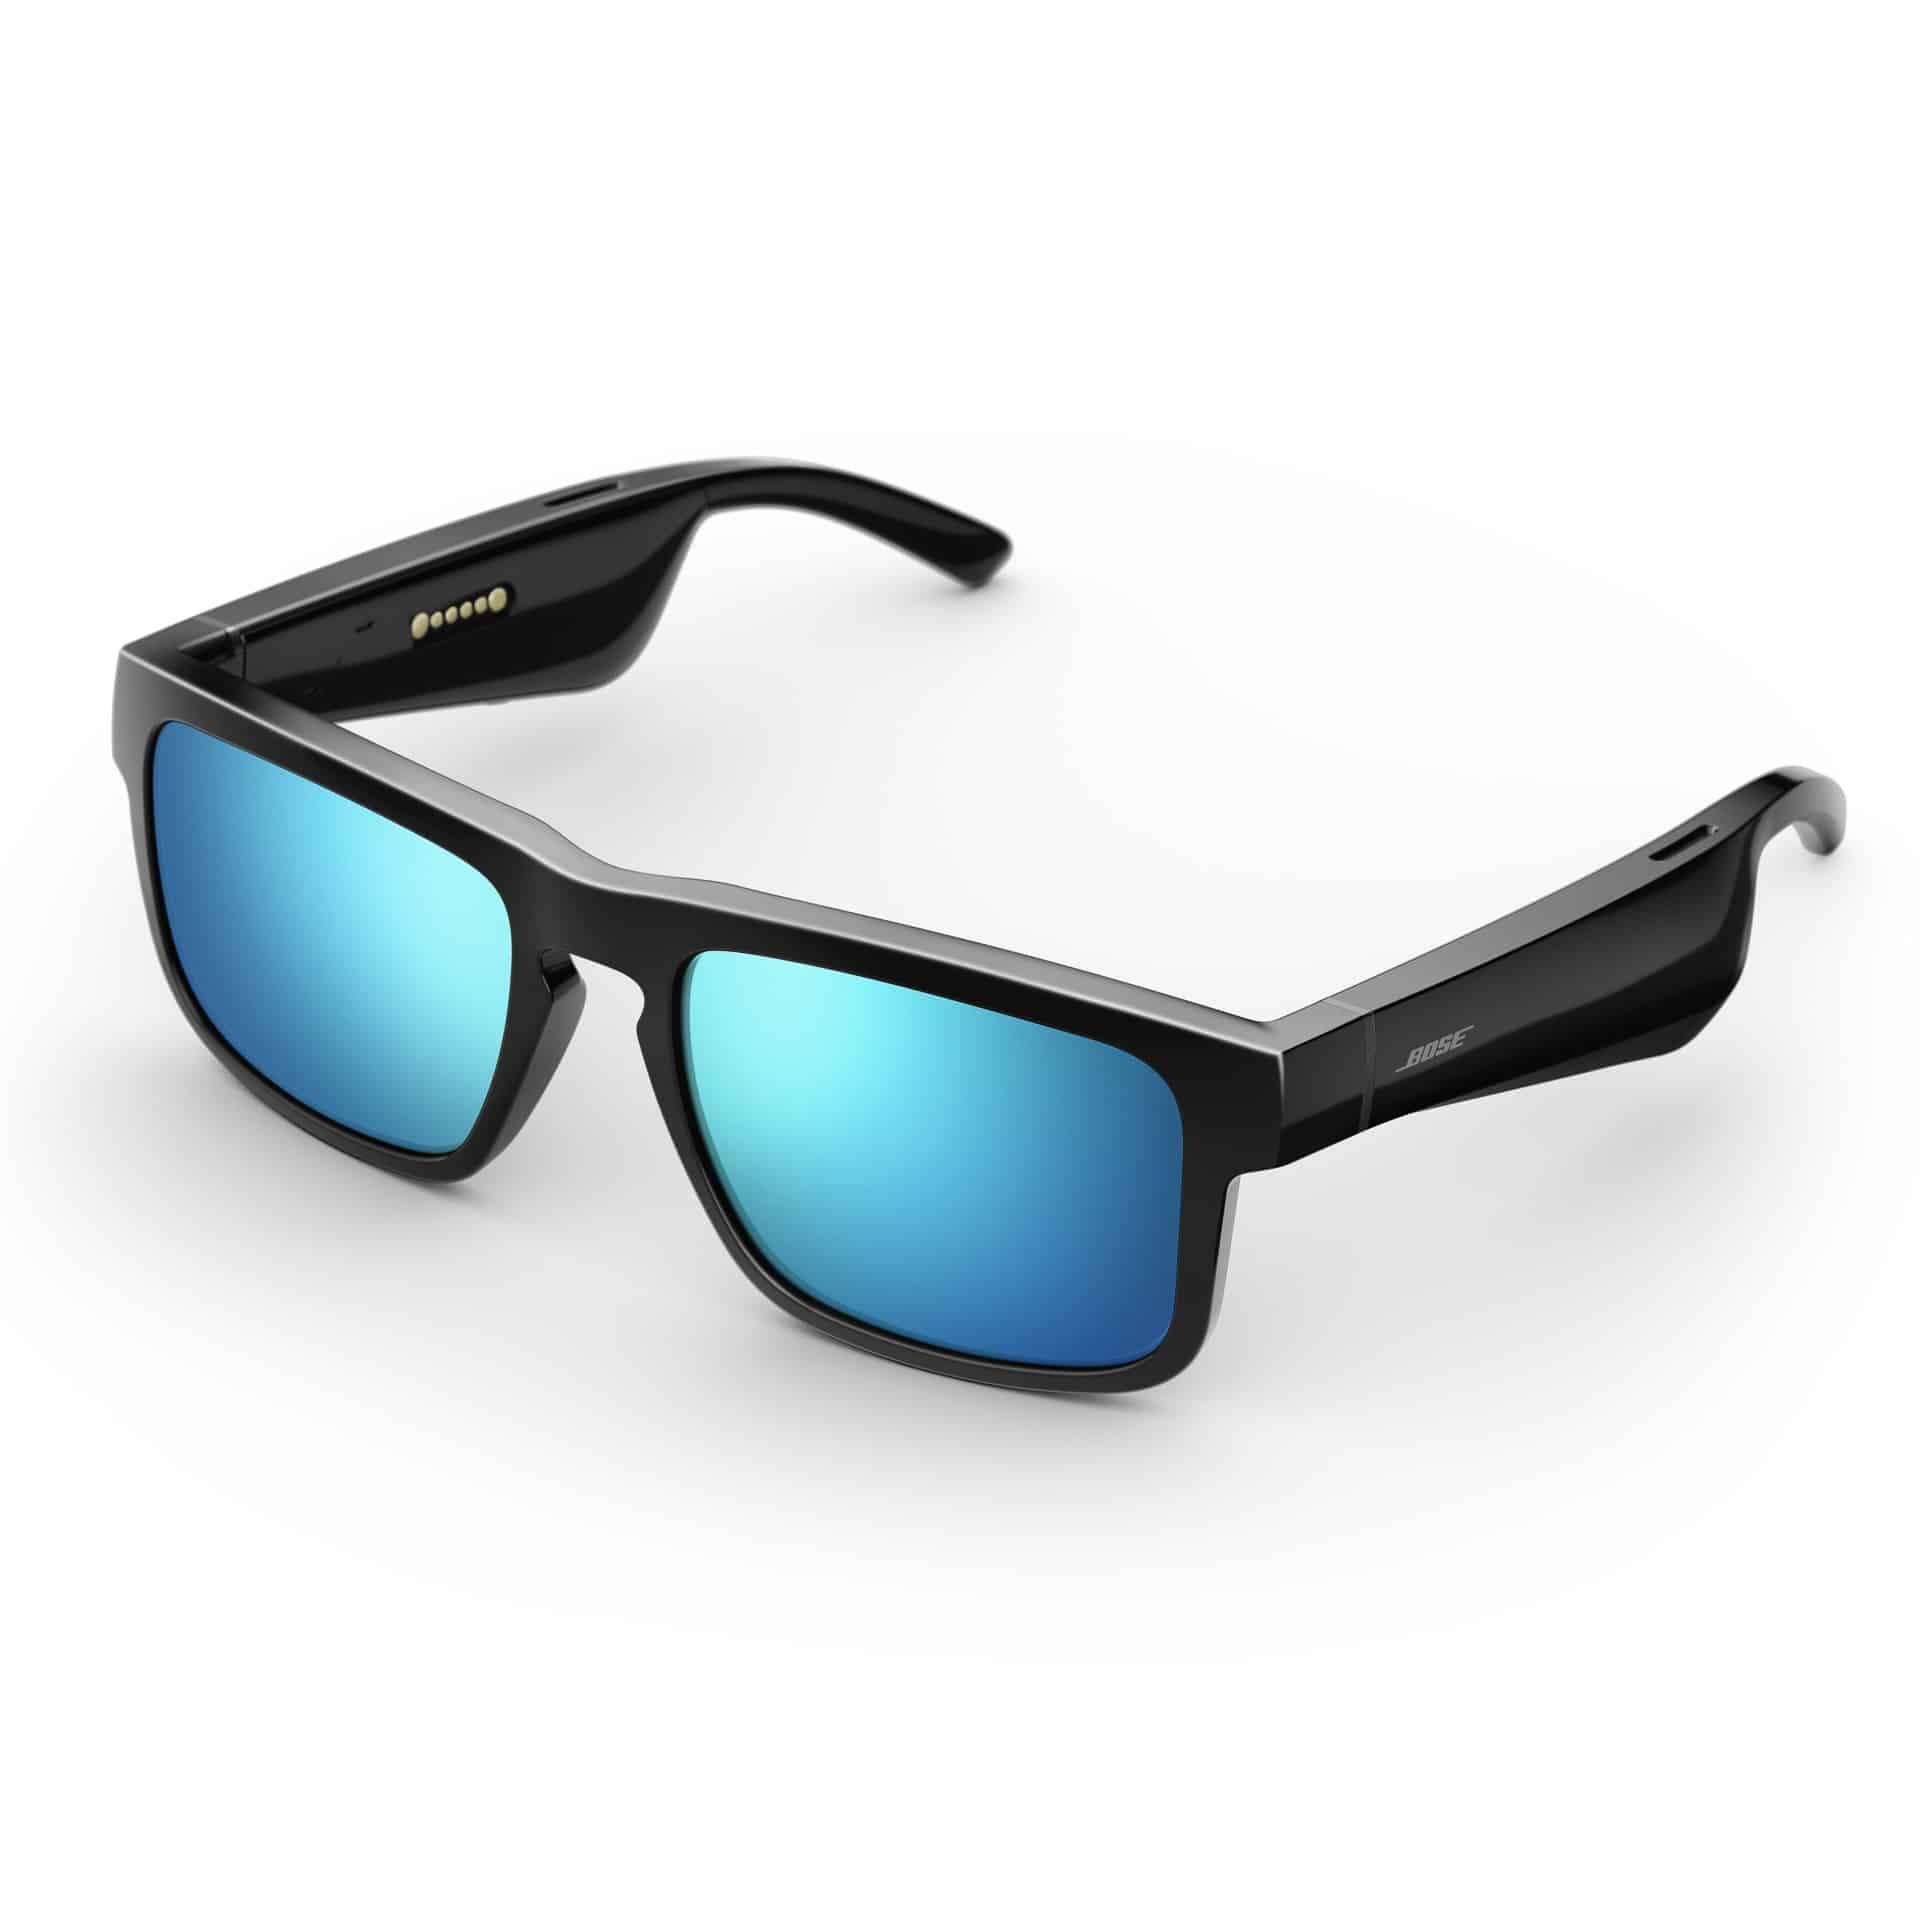 Bose Frames Tenor with Mirrored Blue Lenses 2